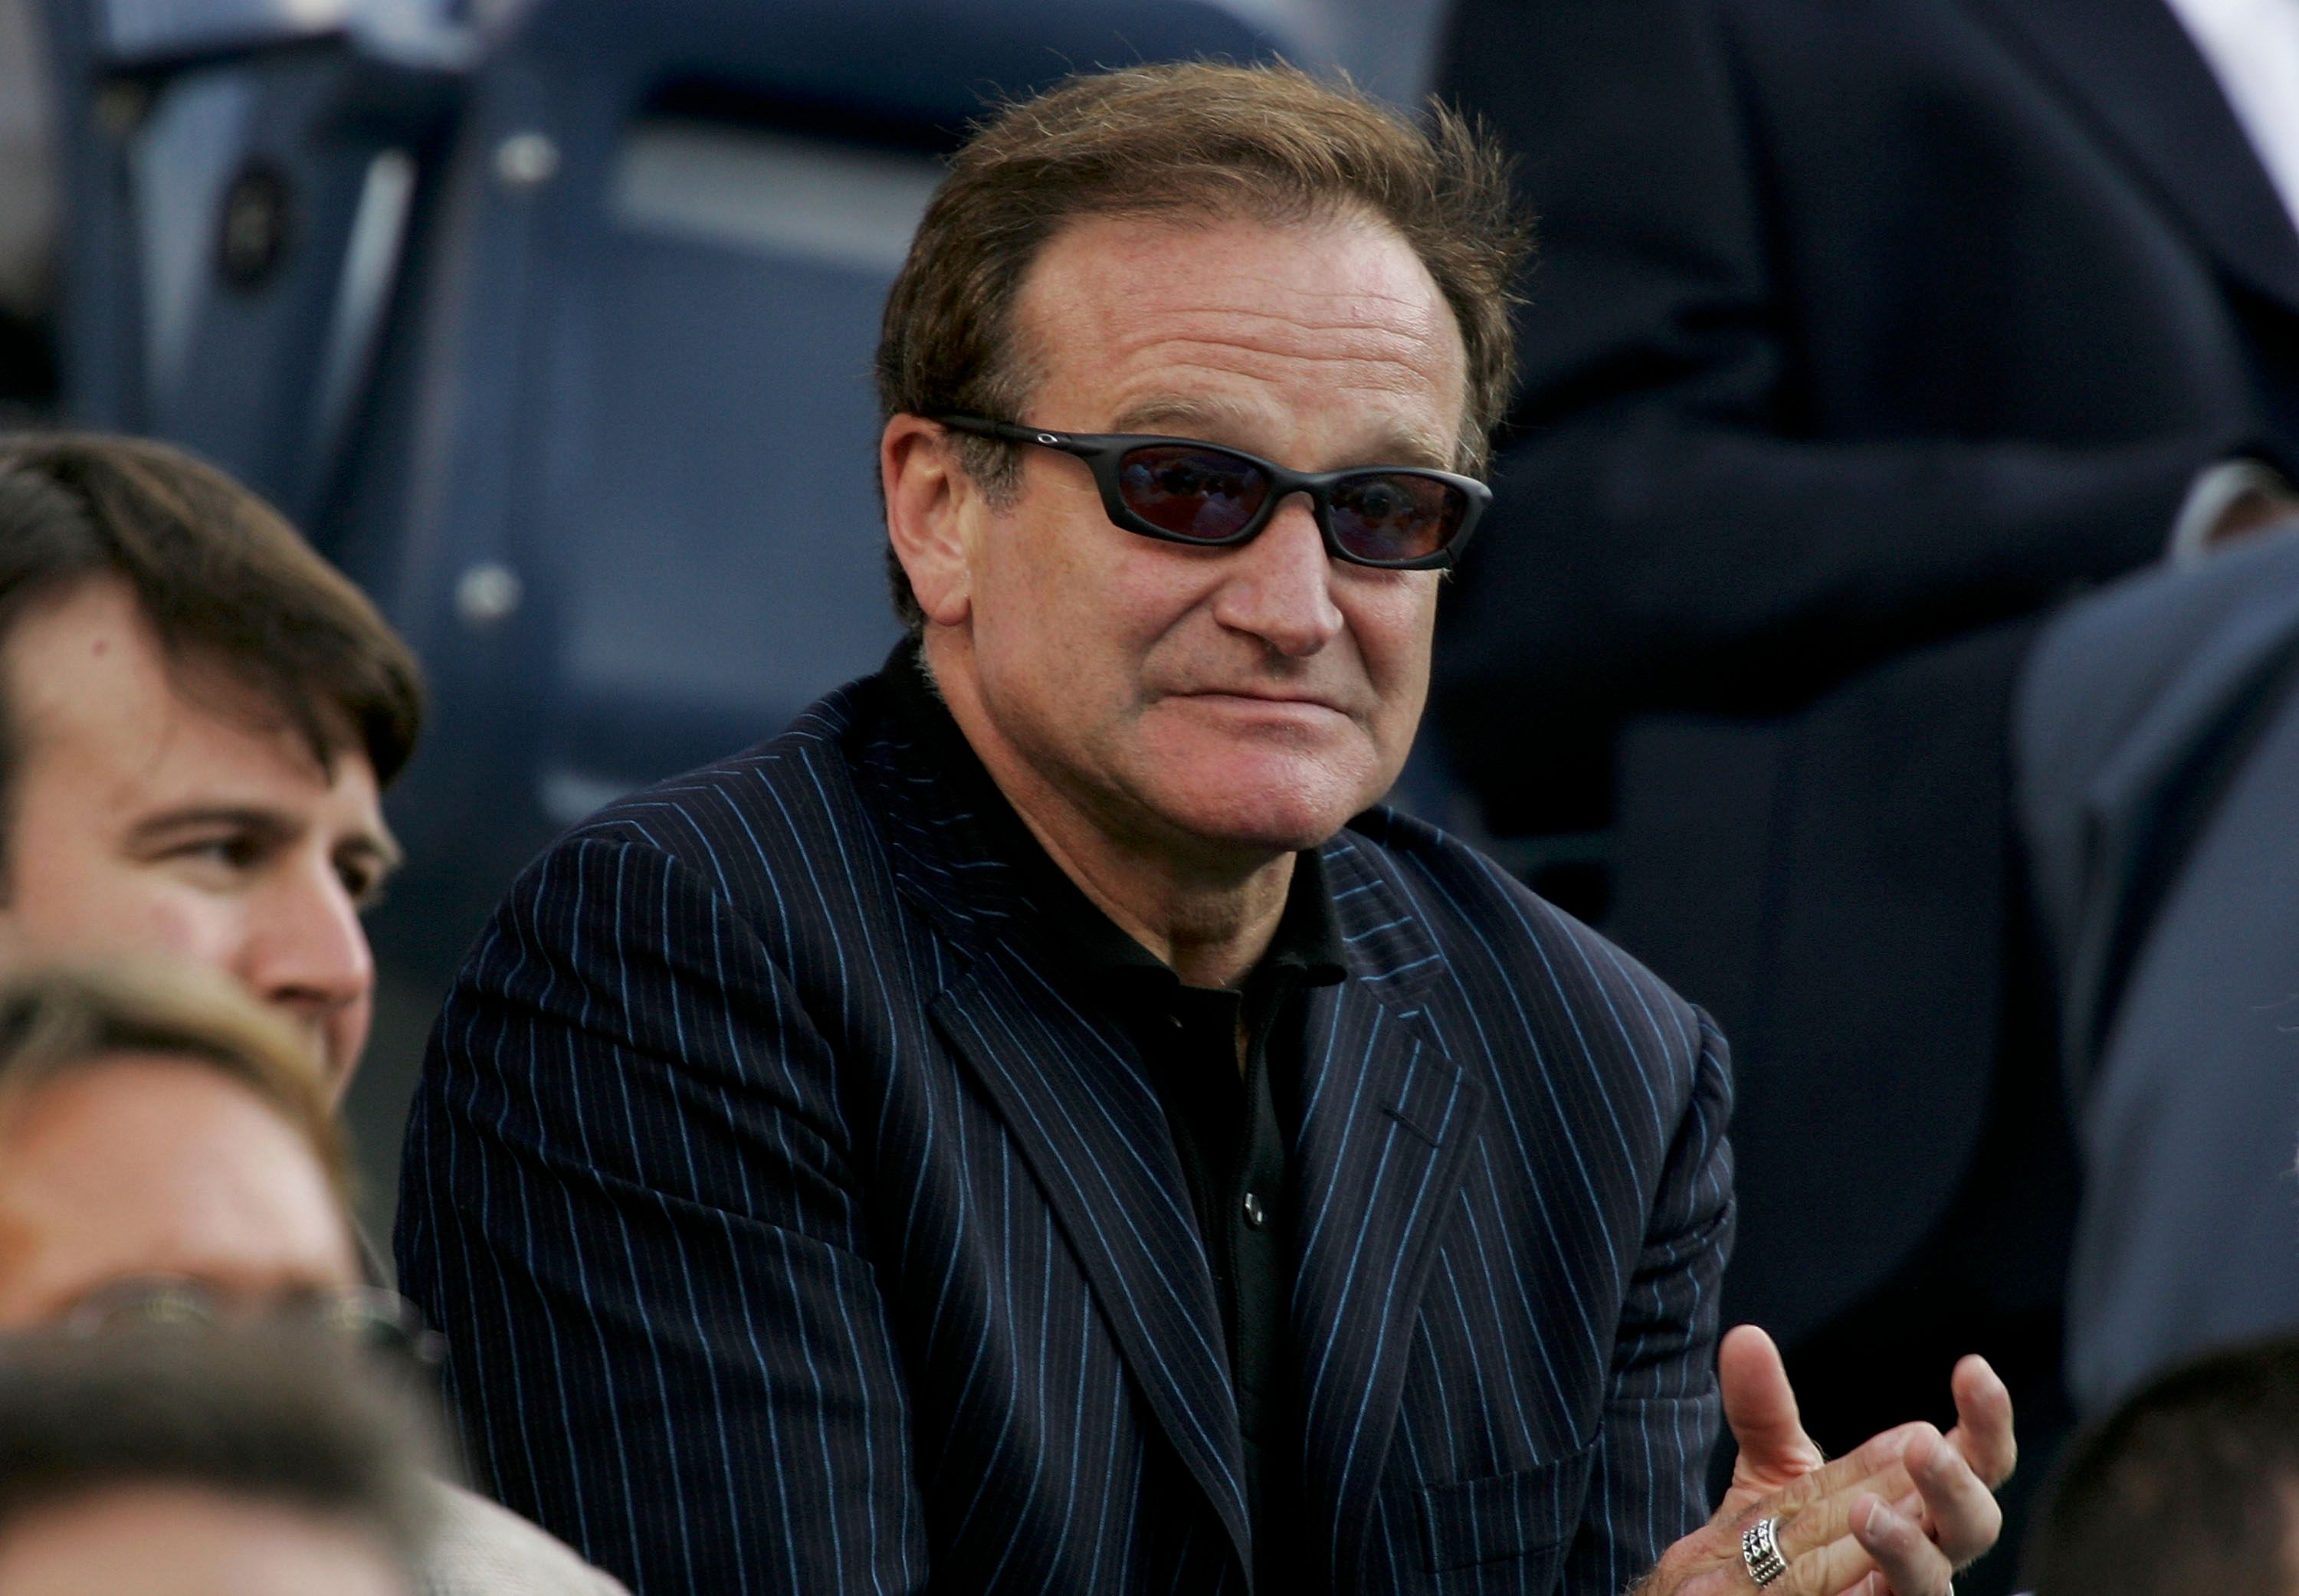 Actor Robin Williams cheers during the men's final, US Open 2005| Photo: Getty Images